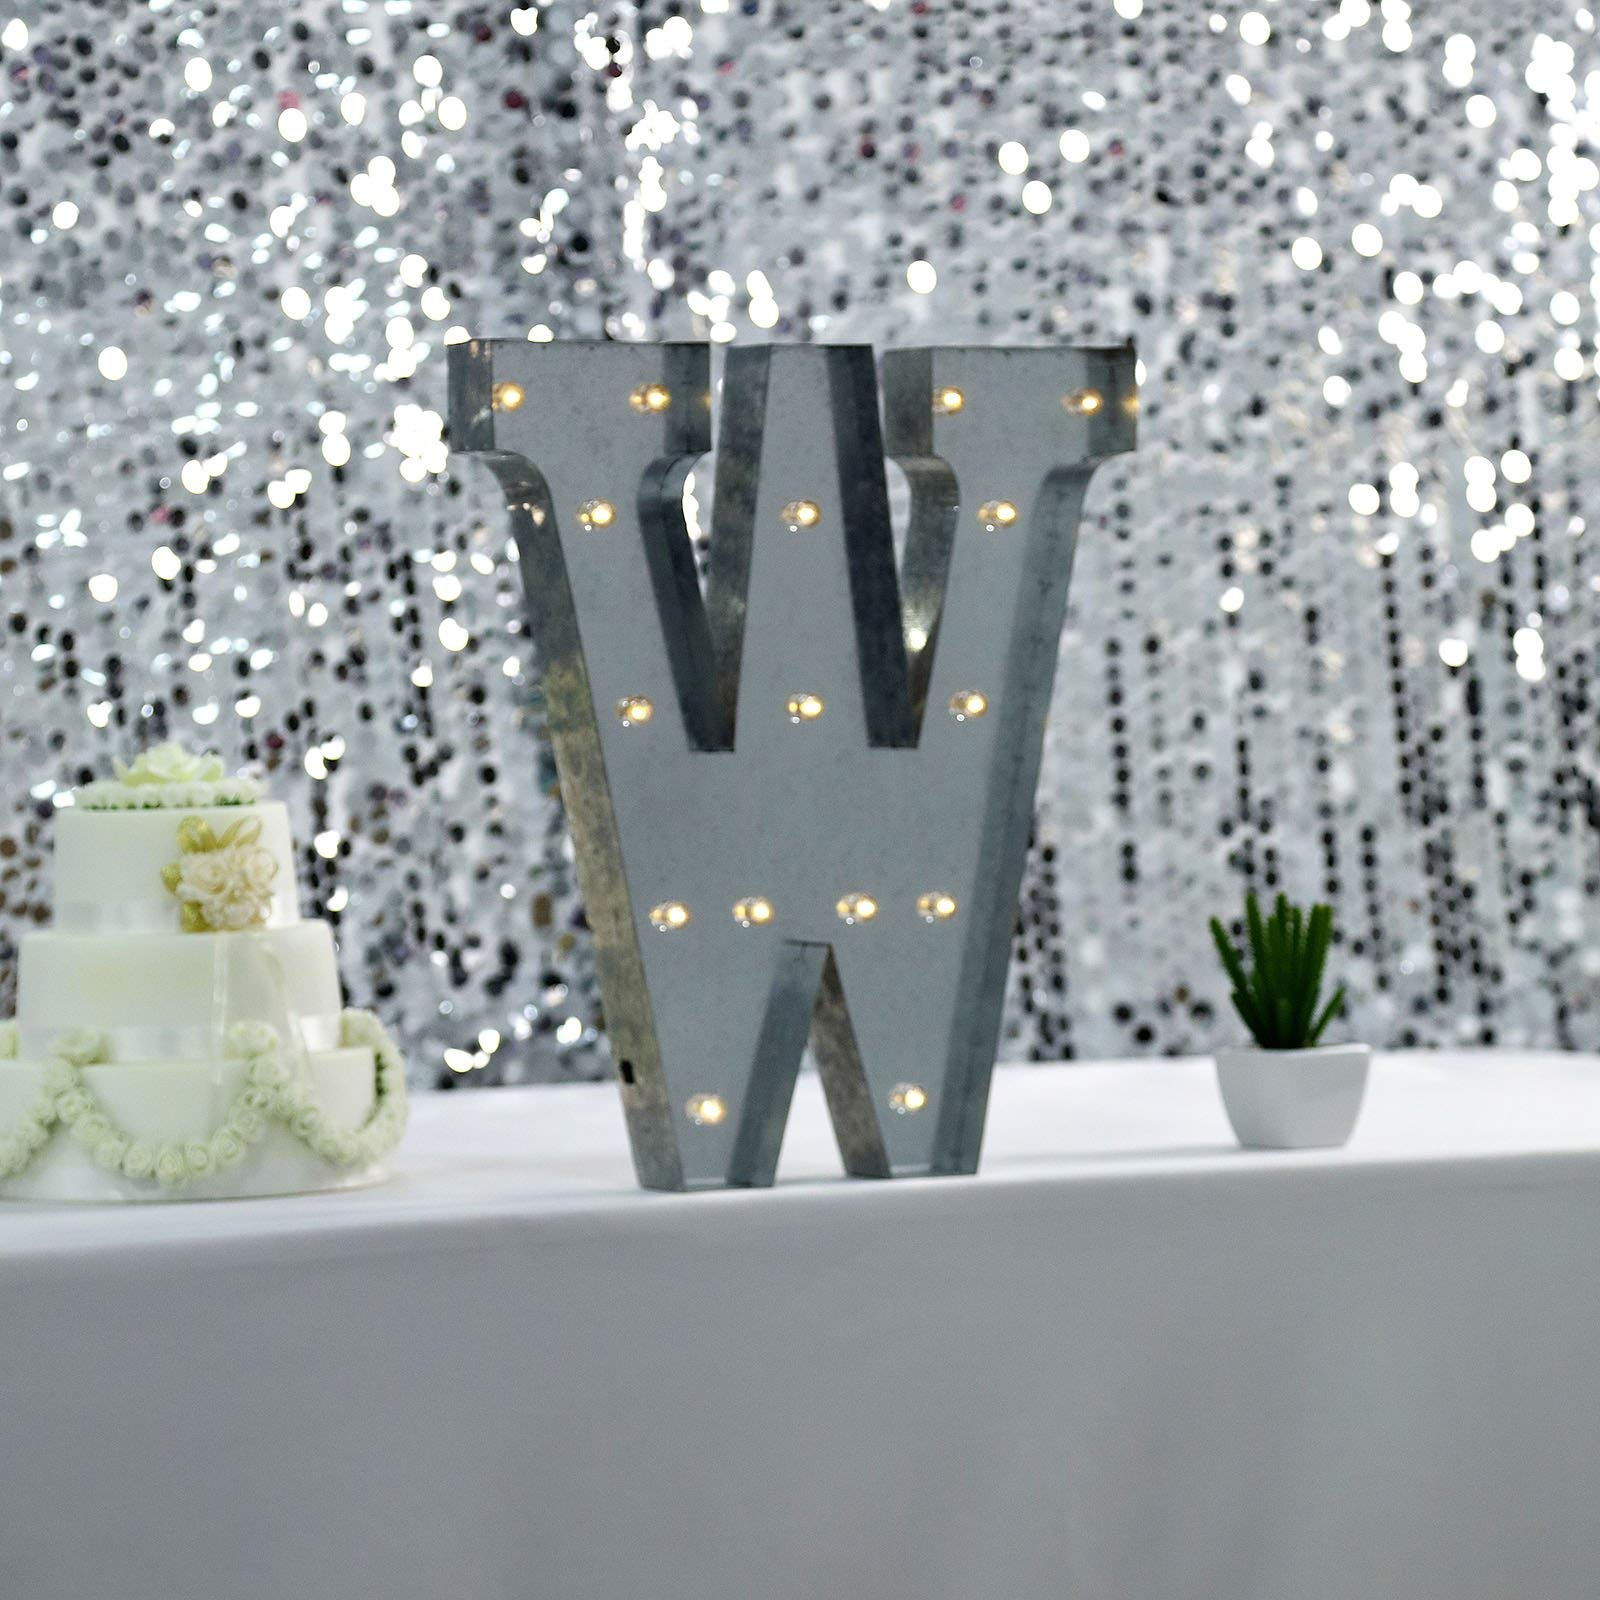 Efavormart 2 FT | Vintage Metal Marquee Letter Lights Cordless with 16 Warm White LED - W by Efavormart